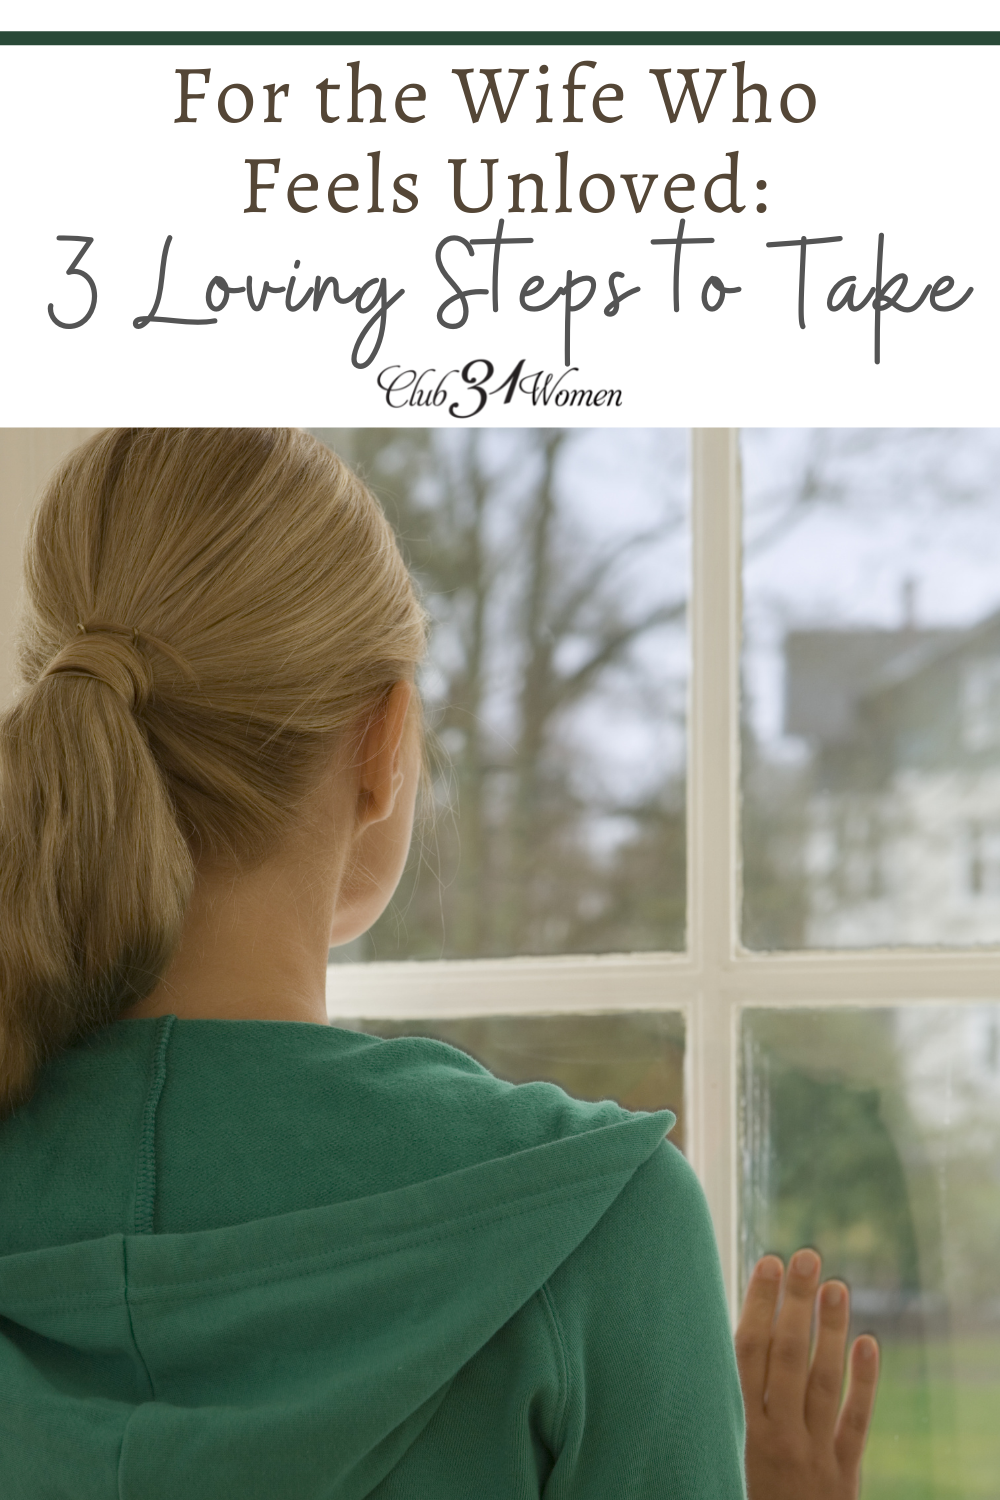 If you - or a wife you know - is struggling in marriage and feeling unloved? Here are 3 steps to take that have the potential to transform your marriage. via @Club31Women